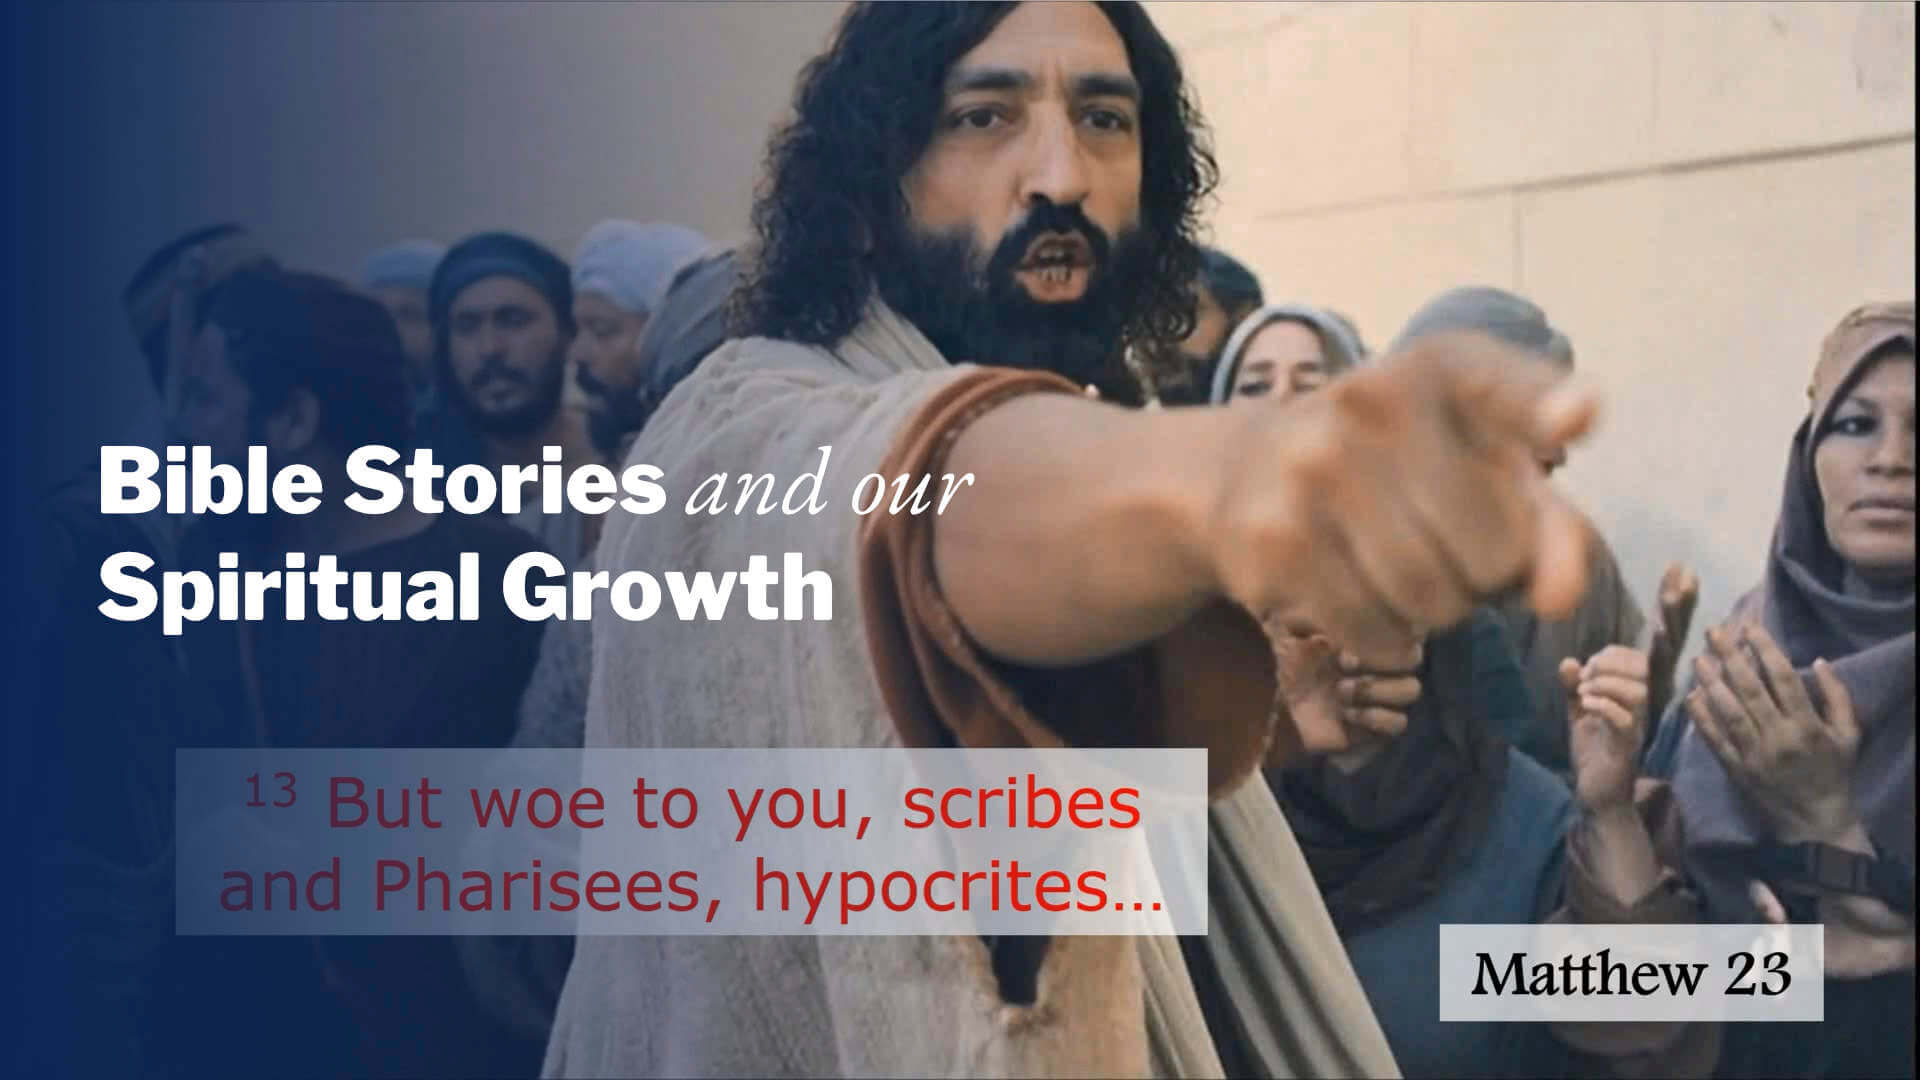 Woes to the Pharisees - Nominal Believers | Bible Stories and Our Spiritual Growth